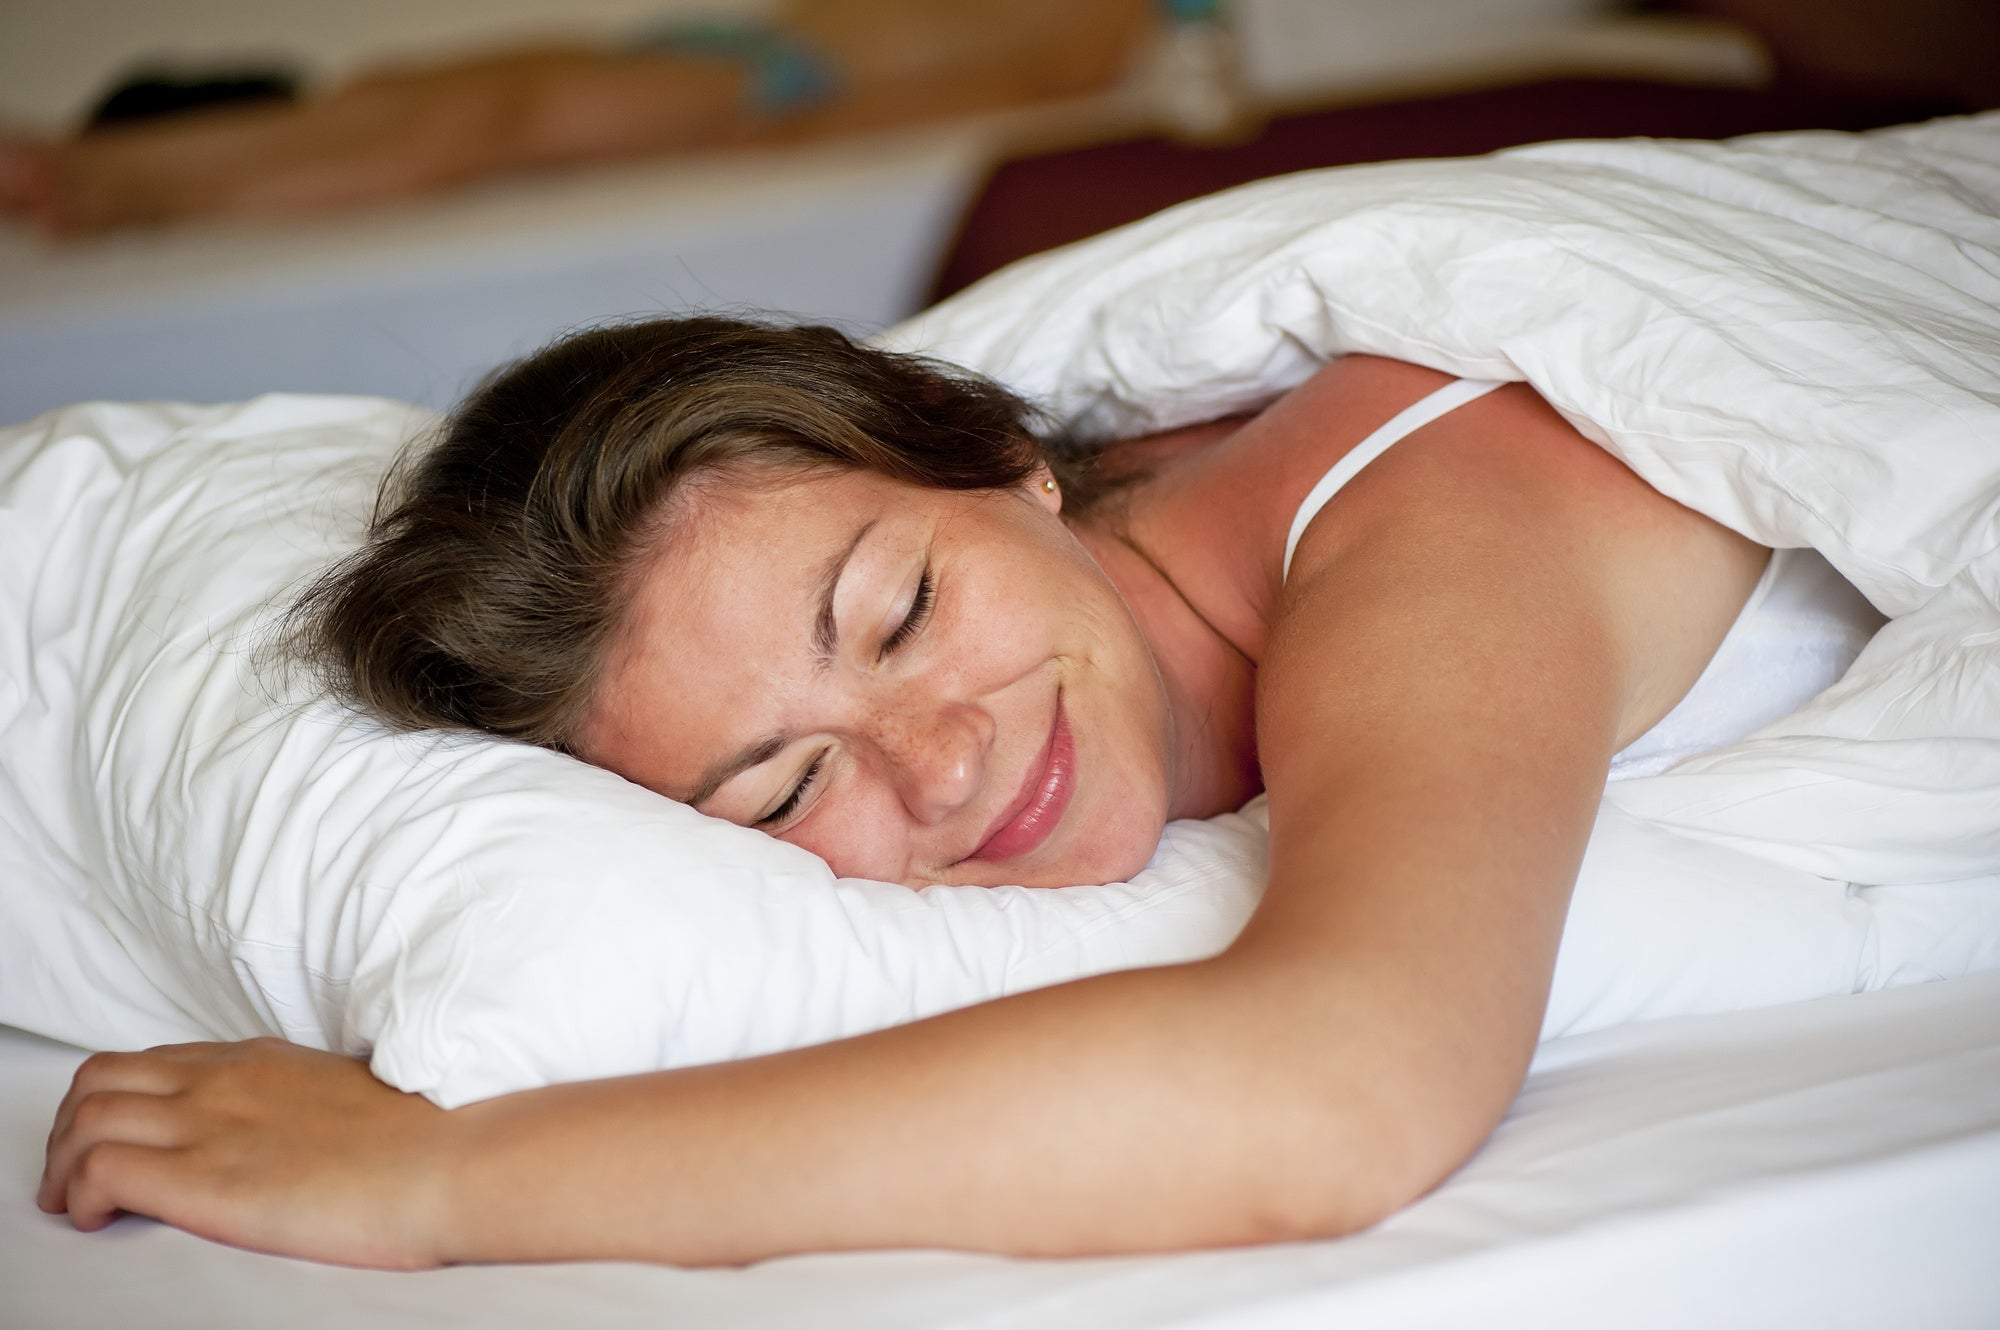 Stomach Sleepers: How to Choose a Pillow if You're a Stomach Sleeper